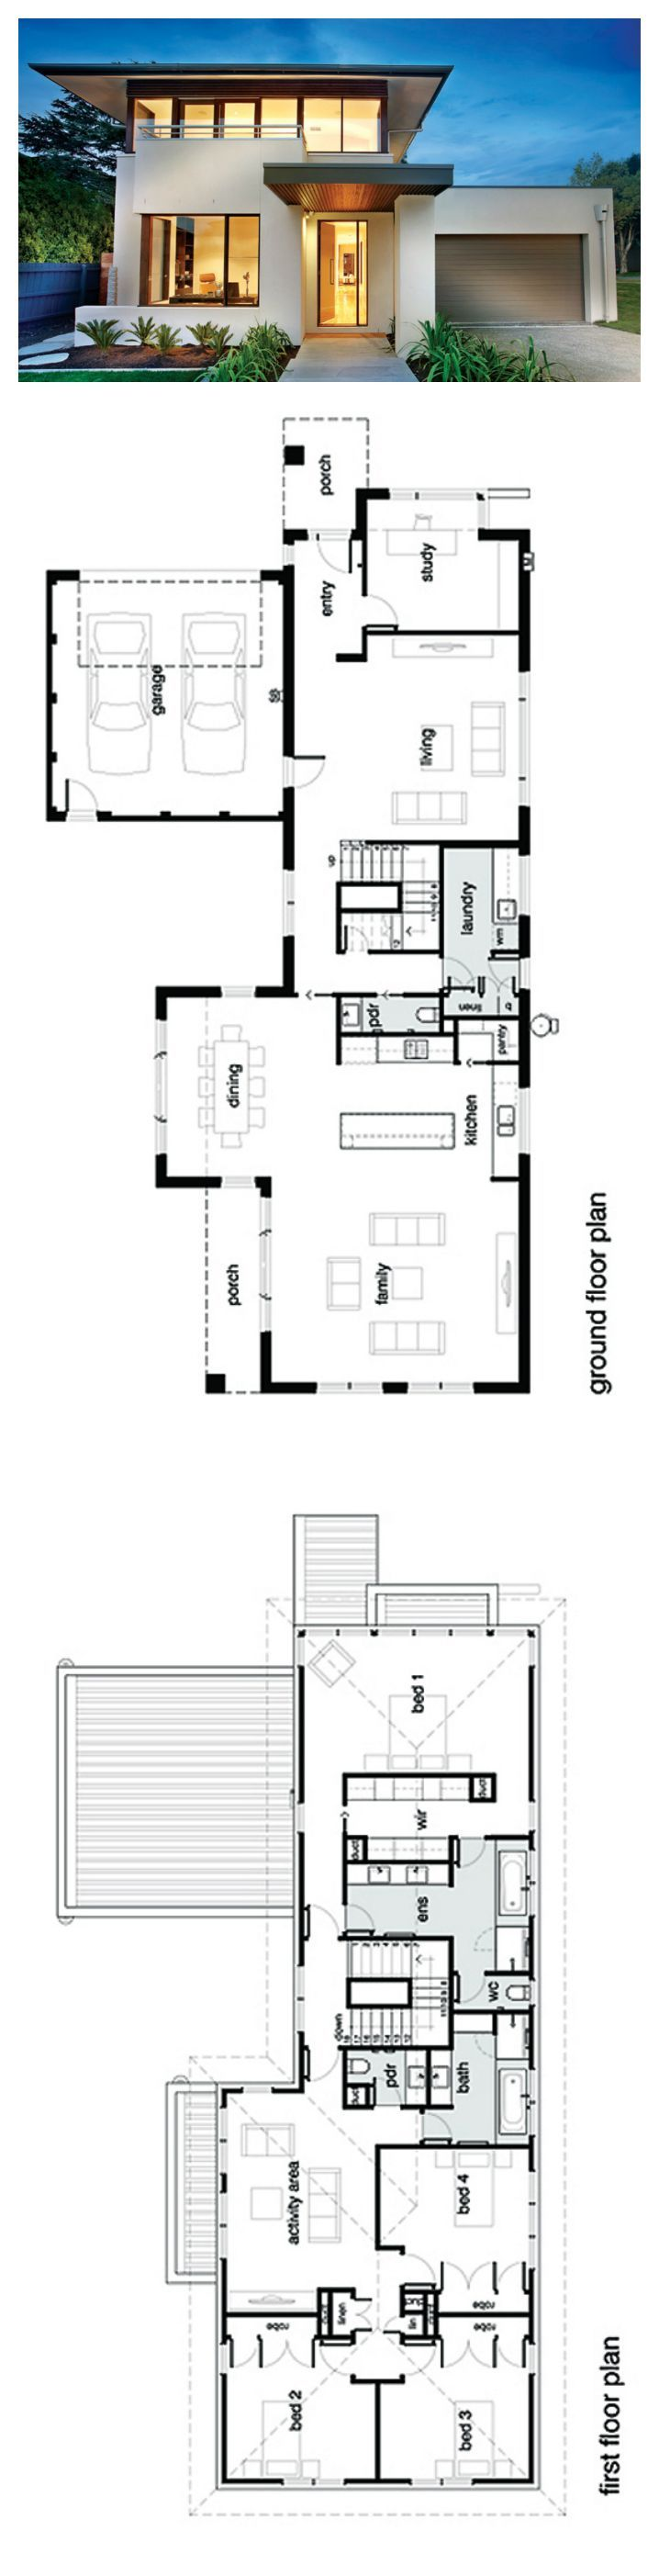 best 25 modern house plans ideas on pinterest ForModern Home Design Plans